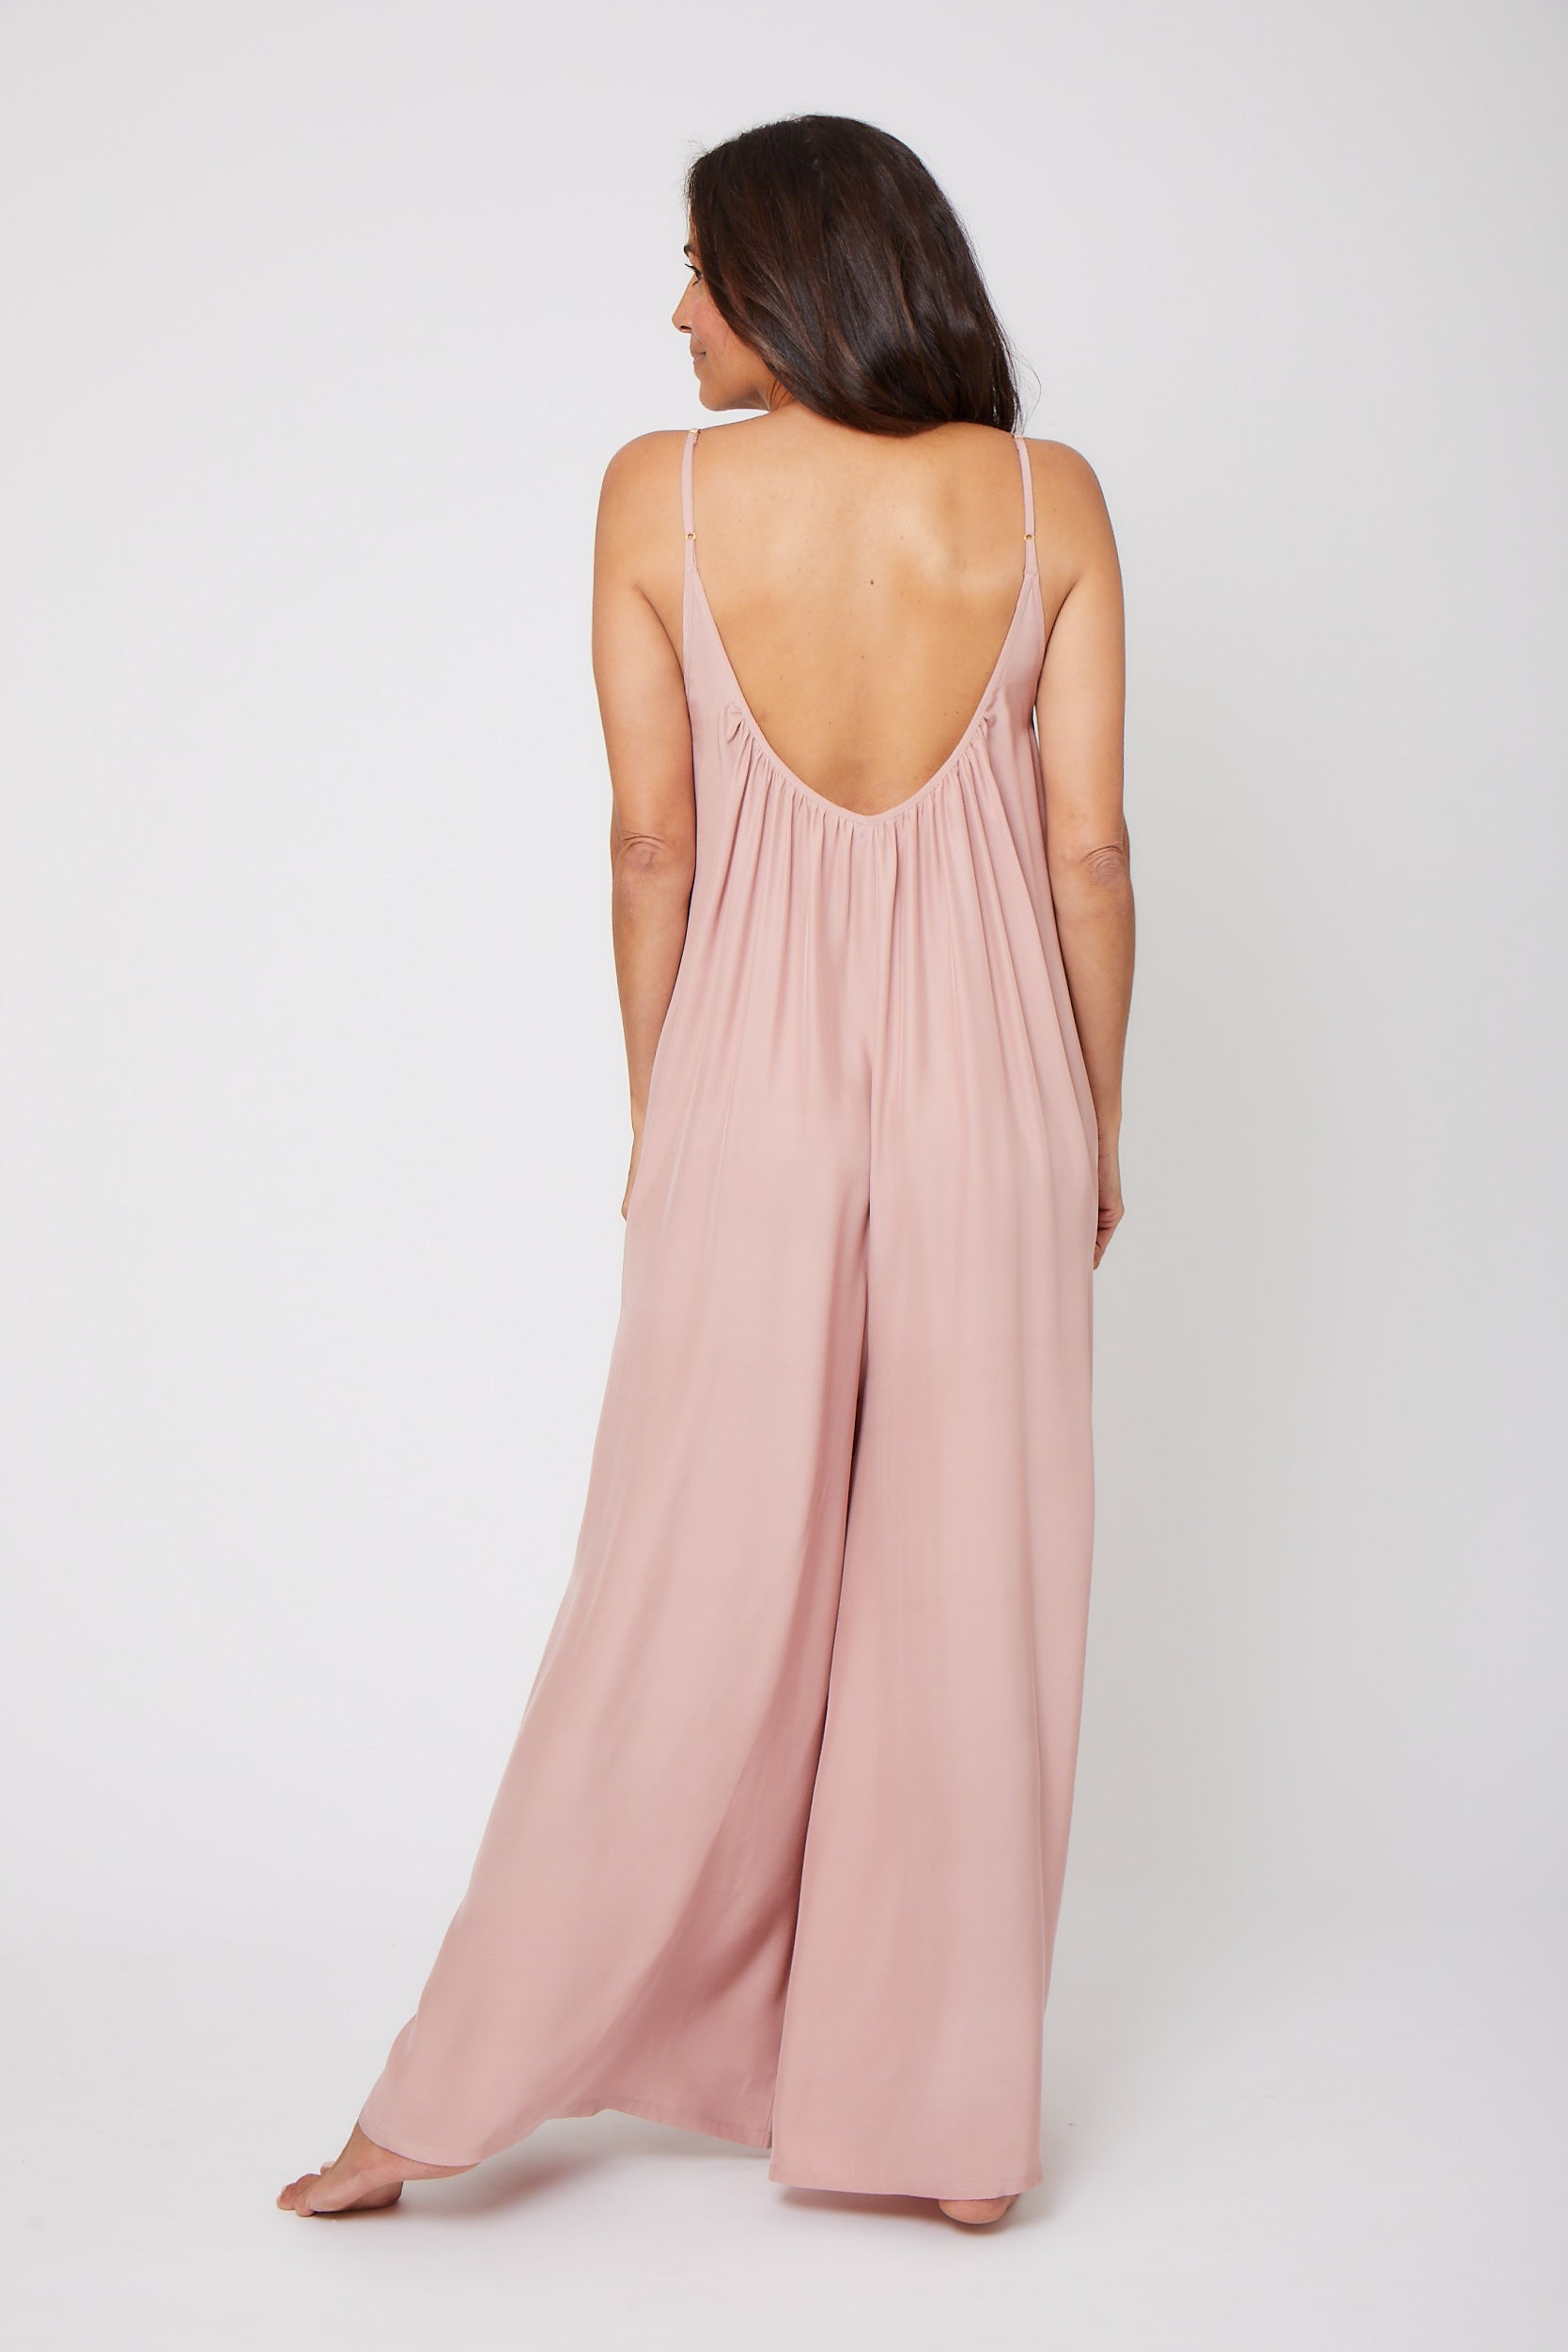 PLF_022620_63_SILK_JUMPSUIT_BLUSH2_1724